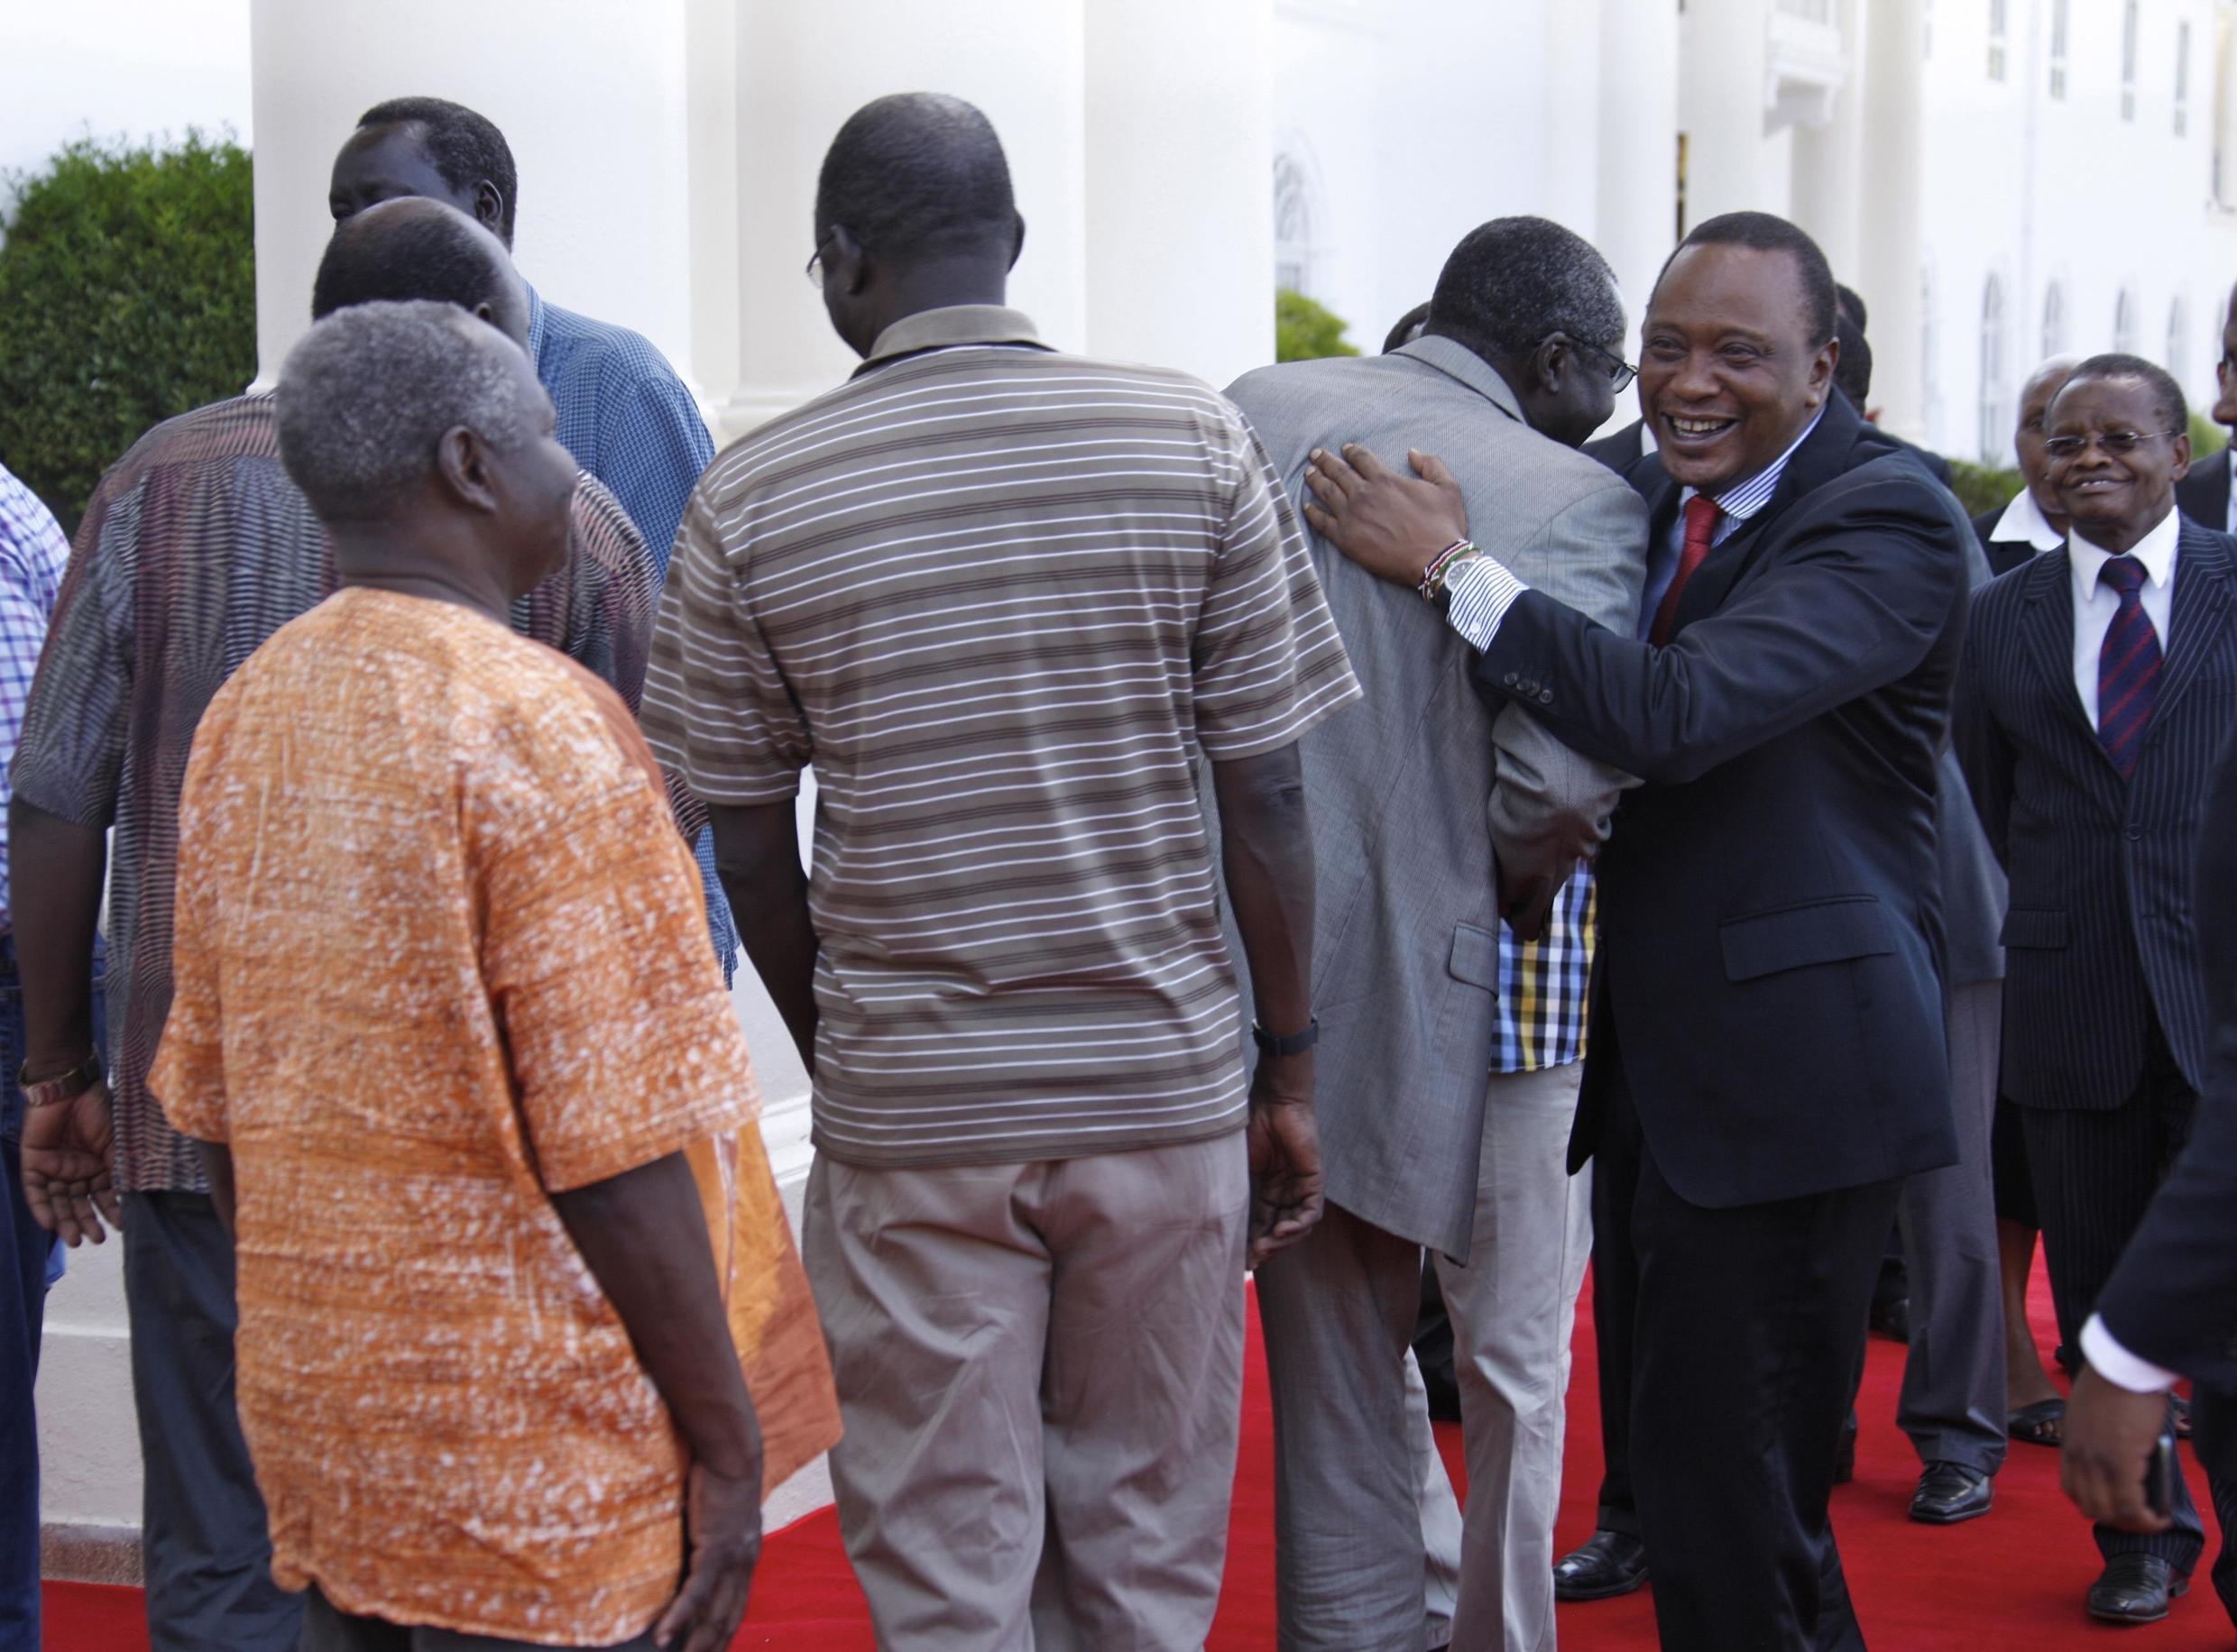 Kenya's President Uhuru Kenyatta (R) with South Sudan's former justice minister John Luk Jok after a news conference on the release of seven political detainees from South Sudan, Nairobi, 29 January, 2014